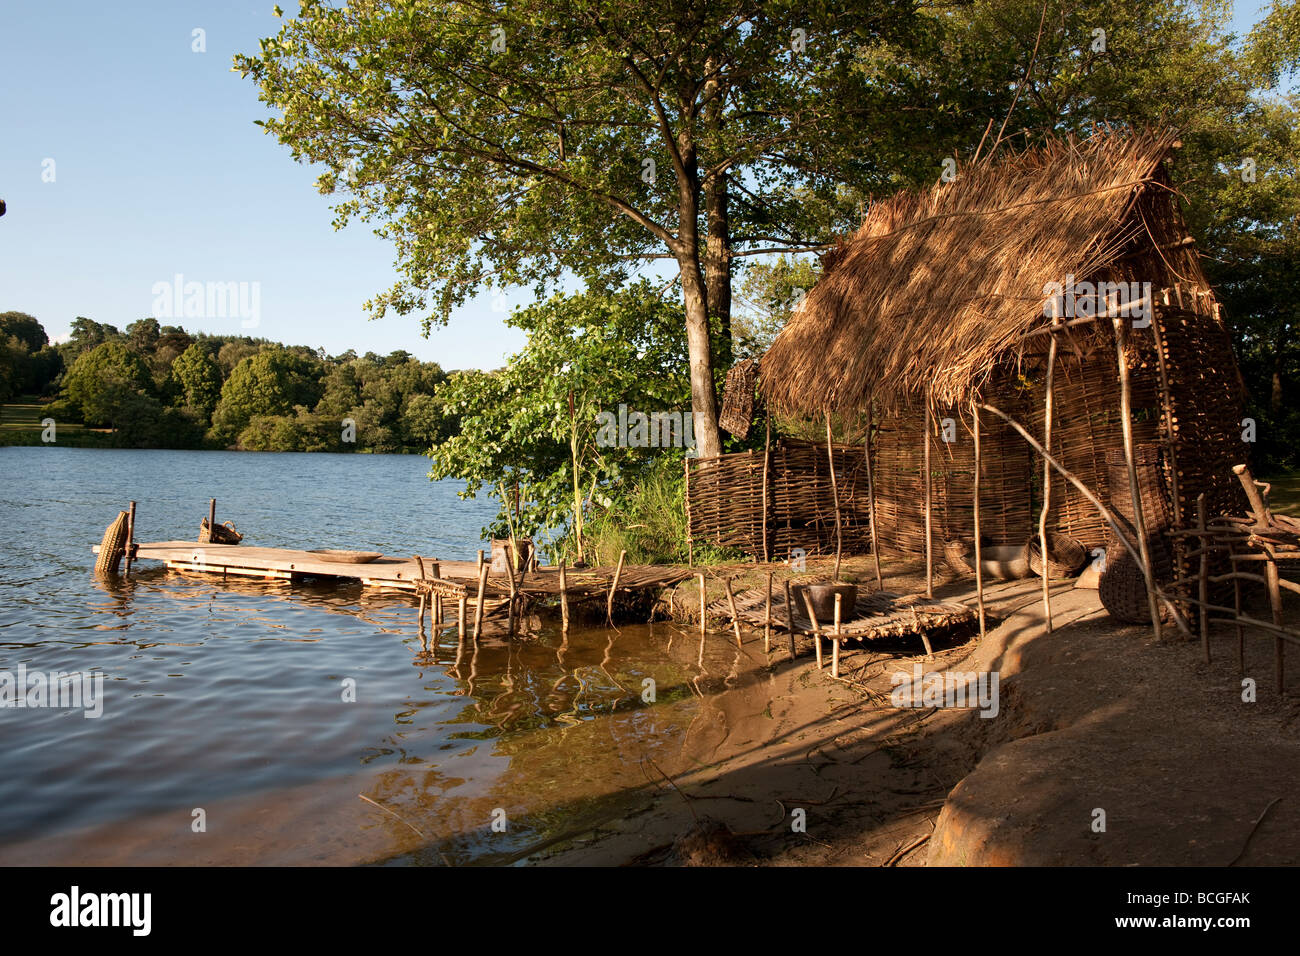 Primative living in stick and reed huts by a lake - Stock Image